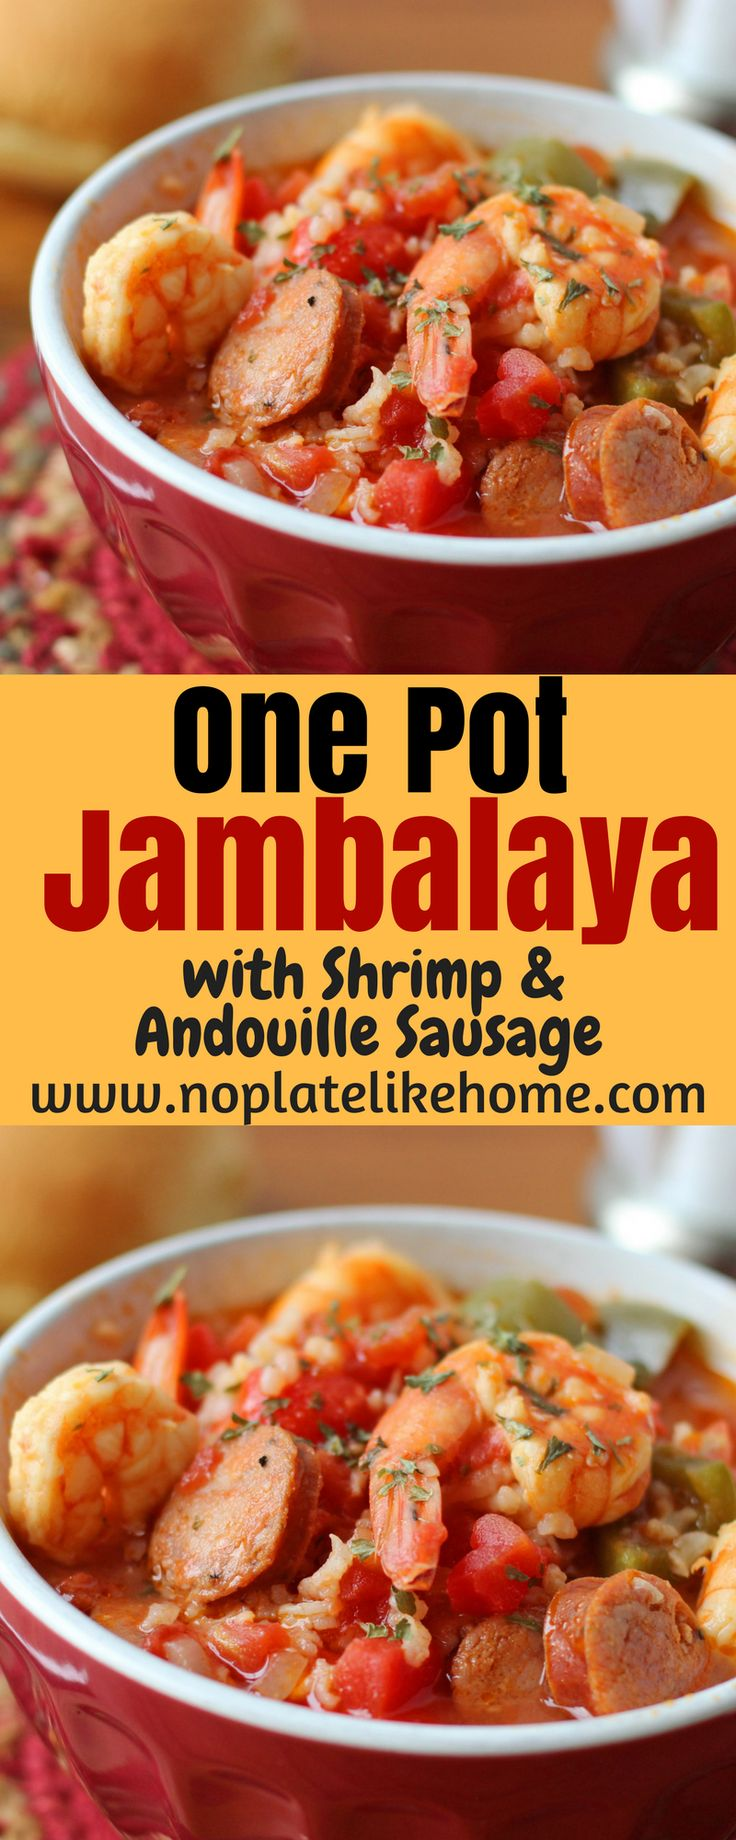 An easy and spicy one pot Jambalaya recipe with shrimp and Andouille sausage. It is a New Orleans homemade meal with creole spices your family will love. The leftovers taste even better! Pin for later!